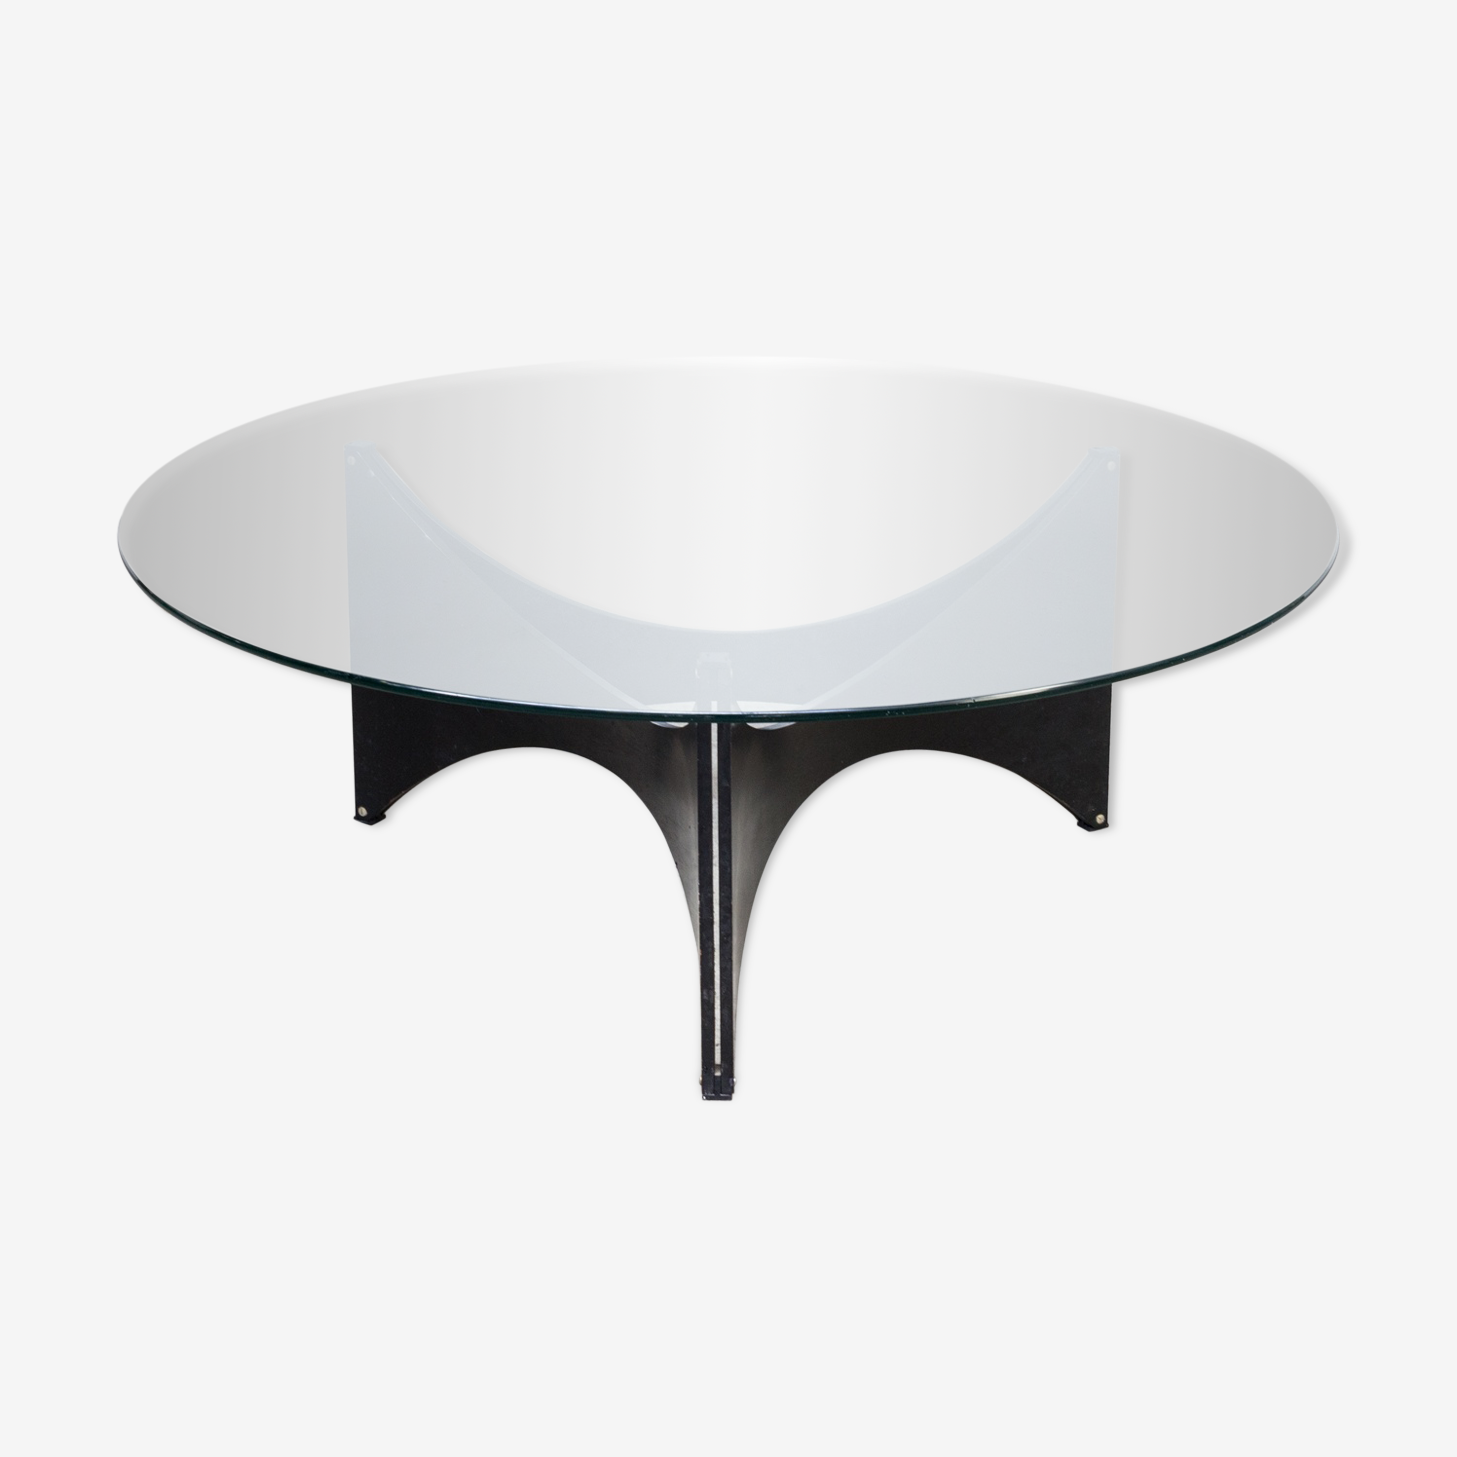 Coffee table TZ75 by Werner Blaser for tSpectrum 1960